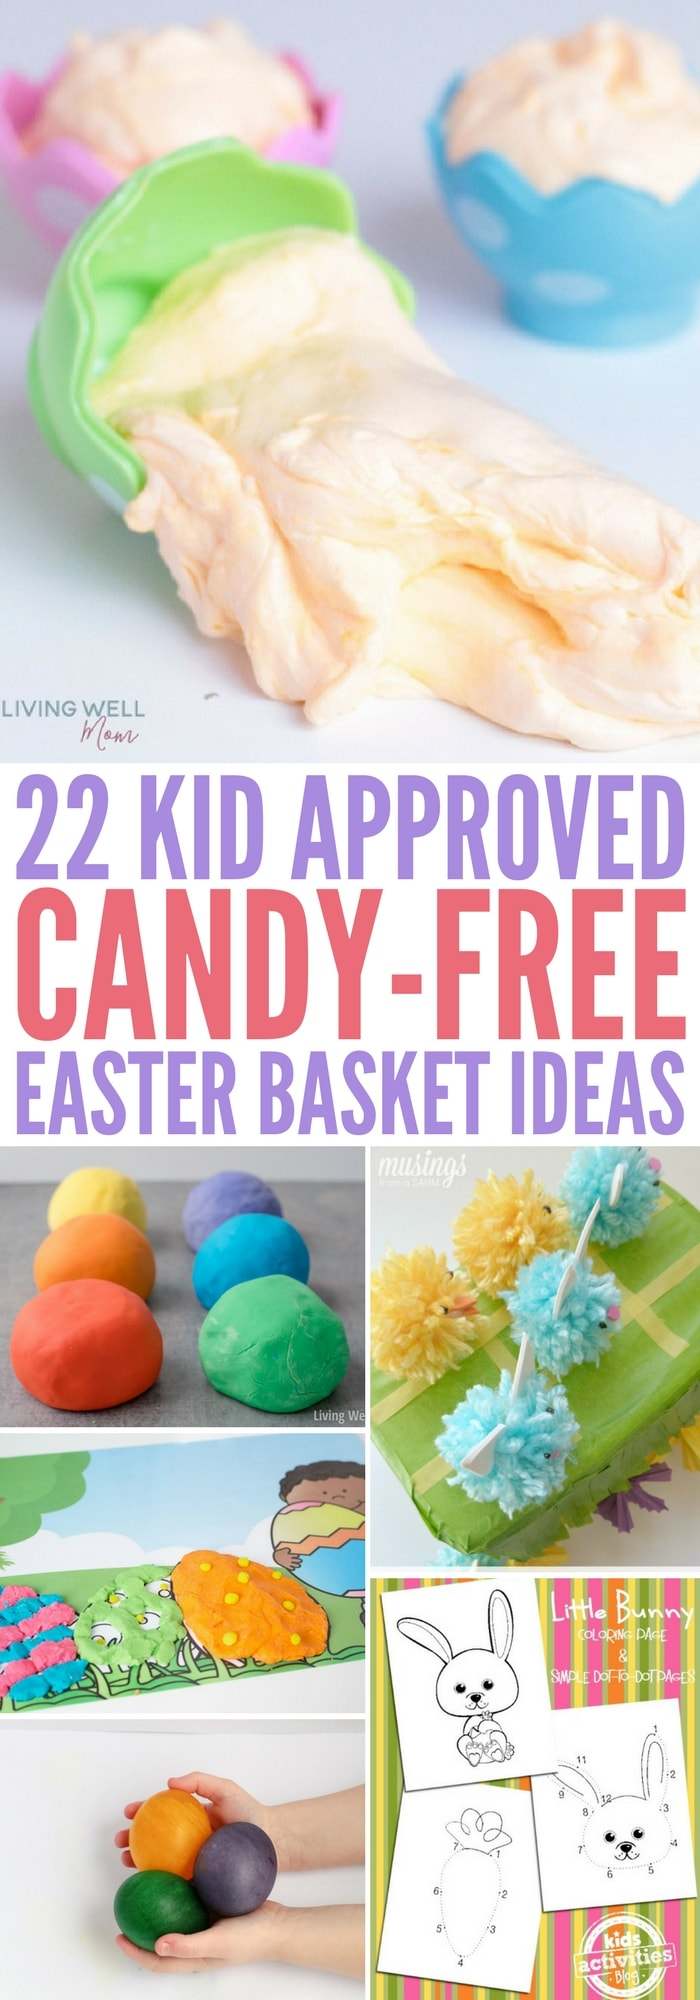 25 kid approved easter basket fillers that arent candy need some easter basket ideas these candy free easter basket fillers were picked out negle Choice Image